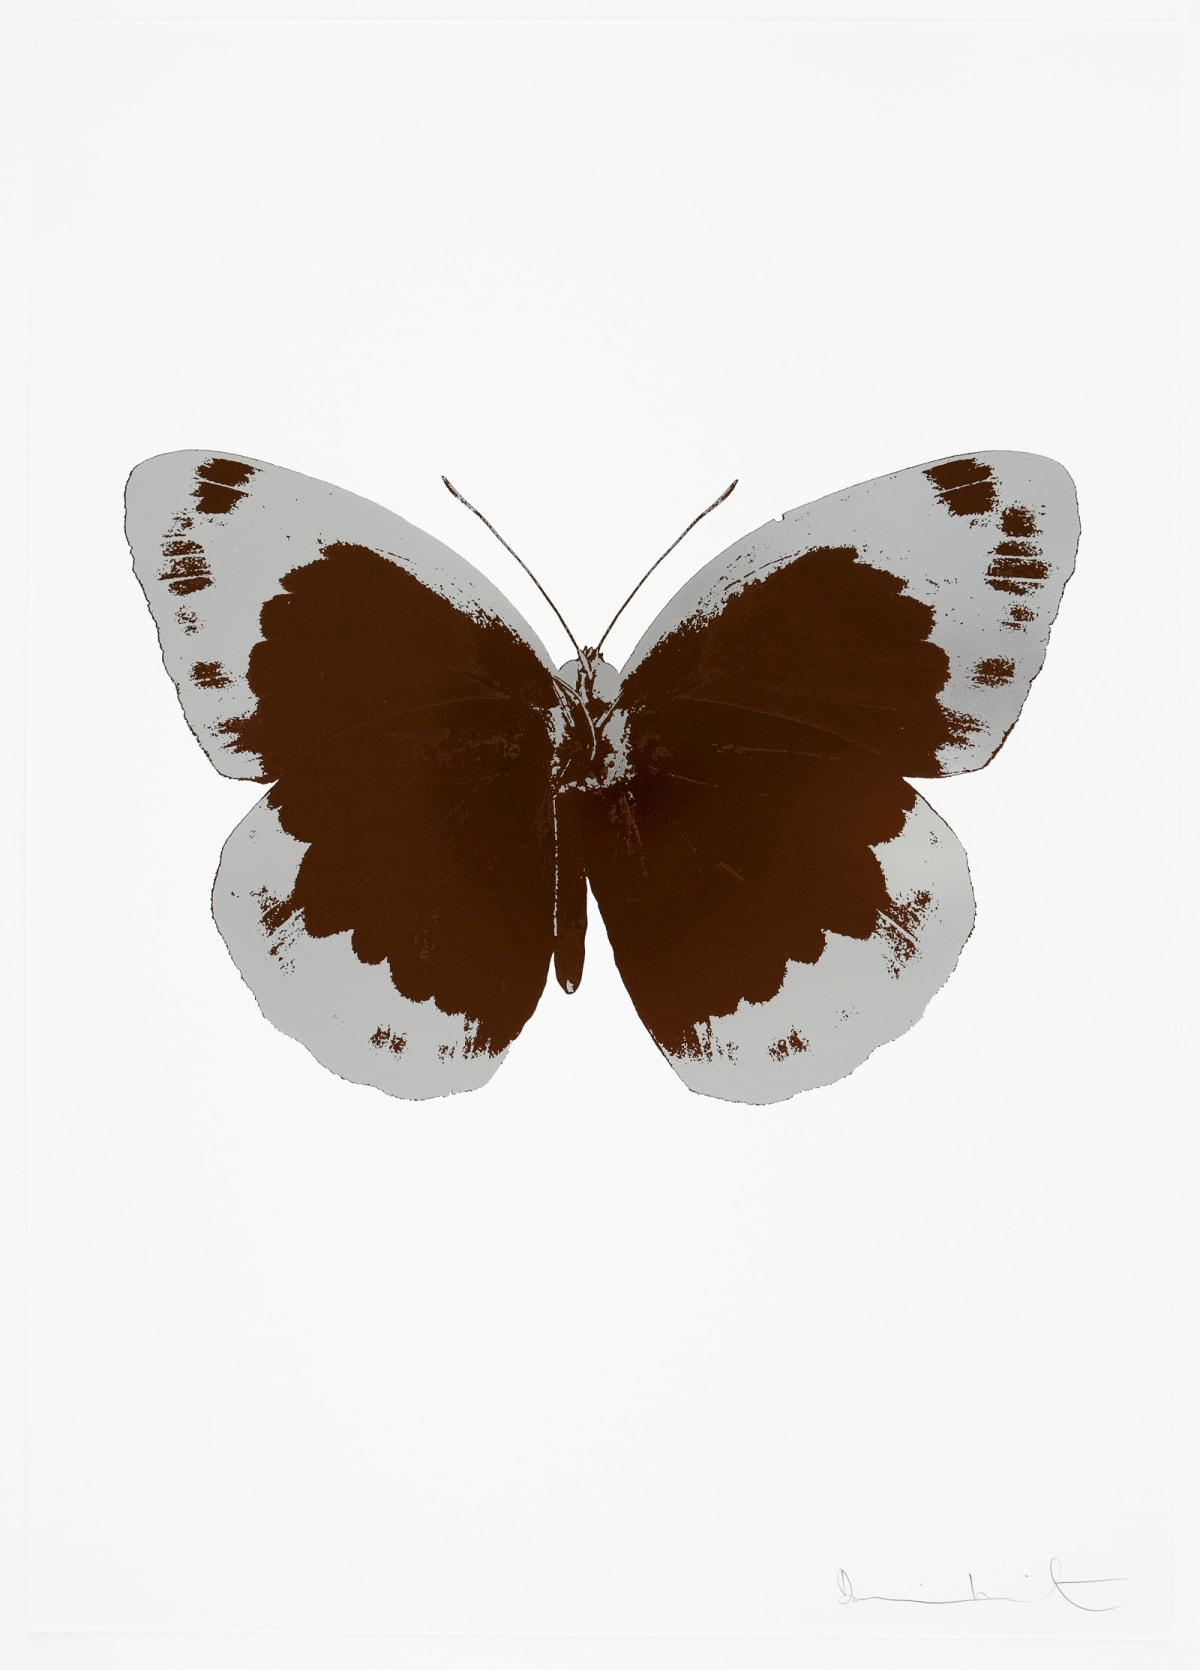 Damien Hirst The Souls II - Chocolate/Silver Gloss/Blind Impression, 2010 2 colour foil block on 300gsm Arches 88 archival paper. Signed and numbered. Published by Paul Stolper and Other Criteria 72 x 51cm OC7850 / 658-33 Edition of 15